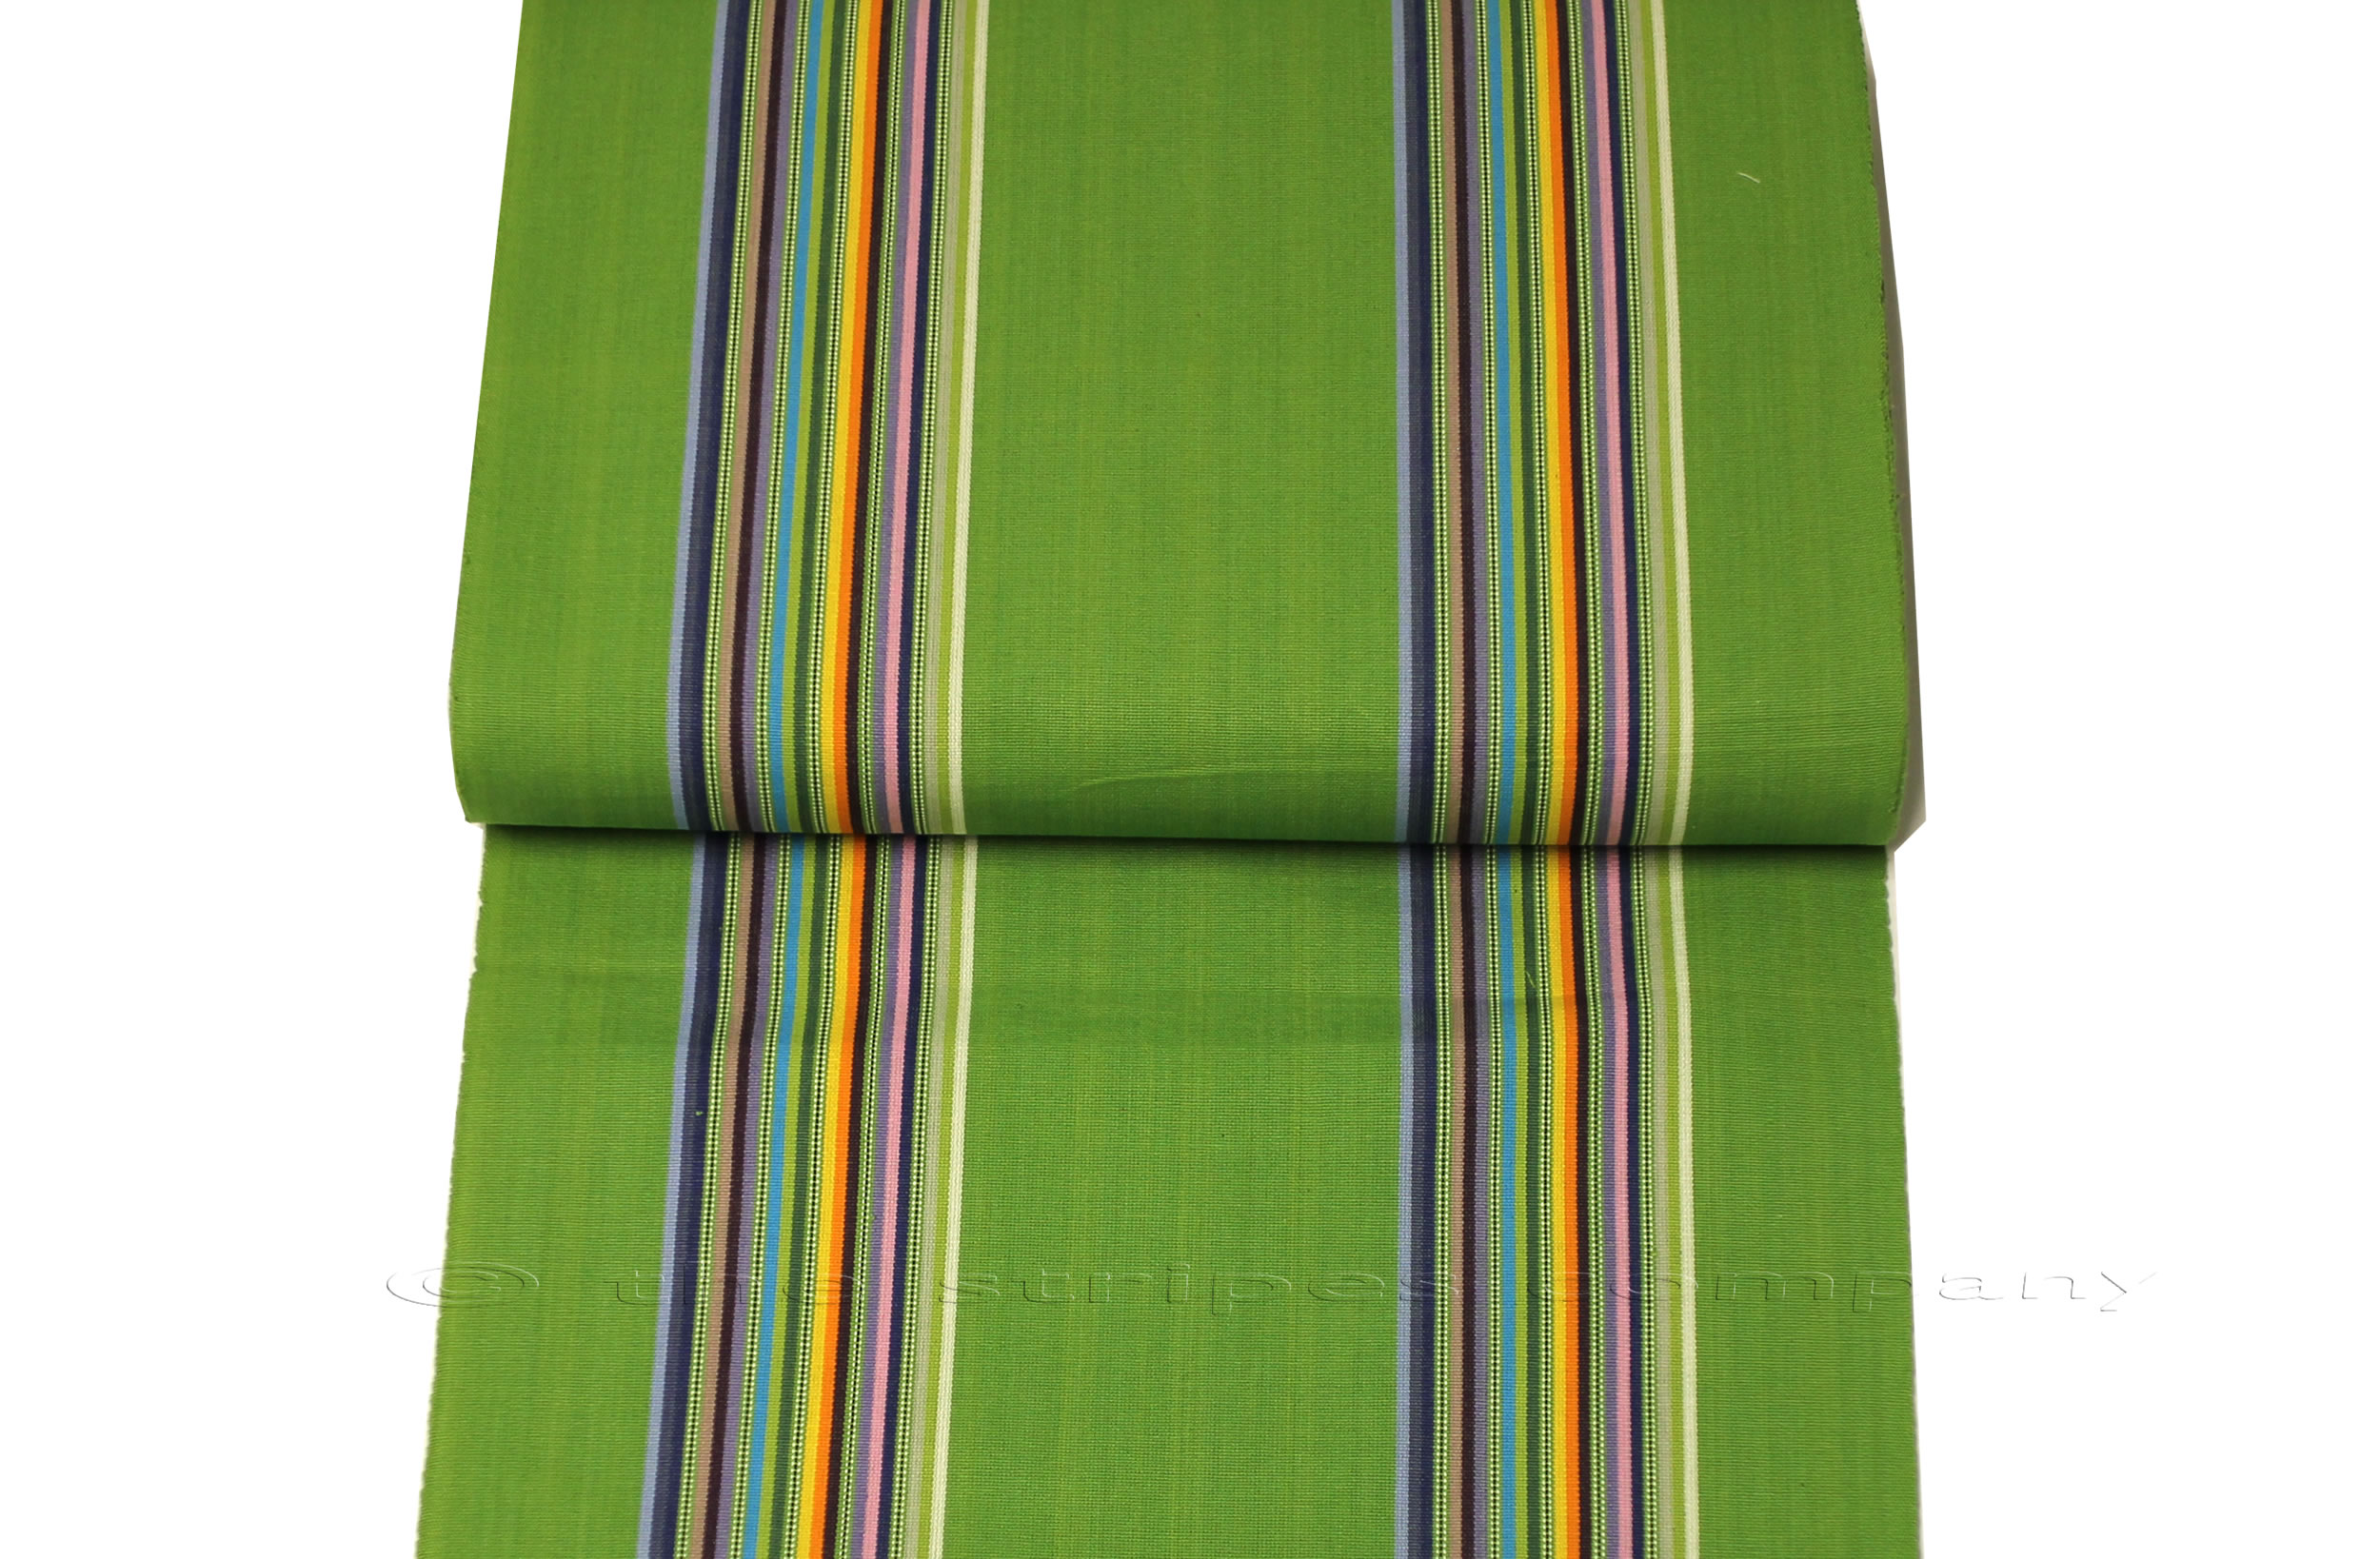 Green Striped Deckchair Canvas Fabric, Strong Weave with Rainbow Stripes